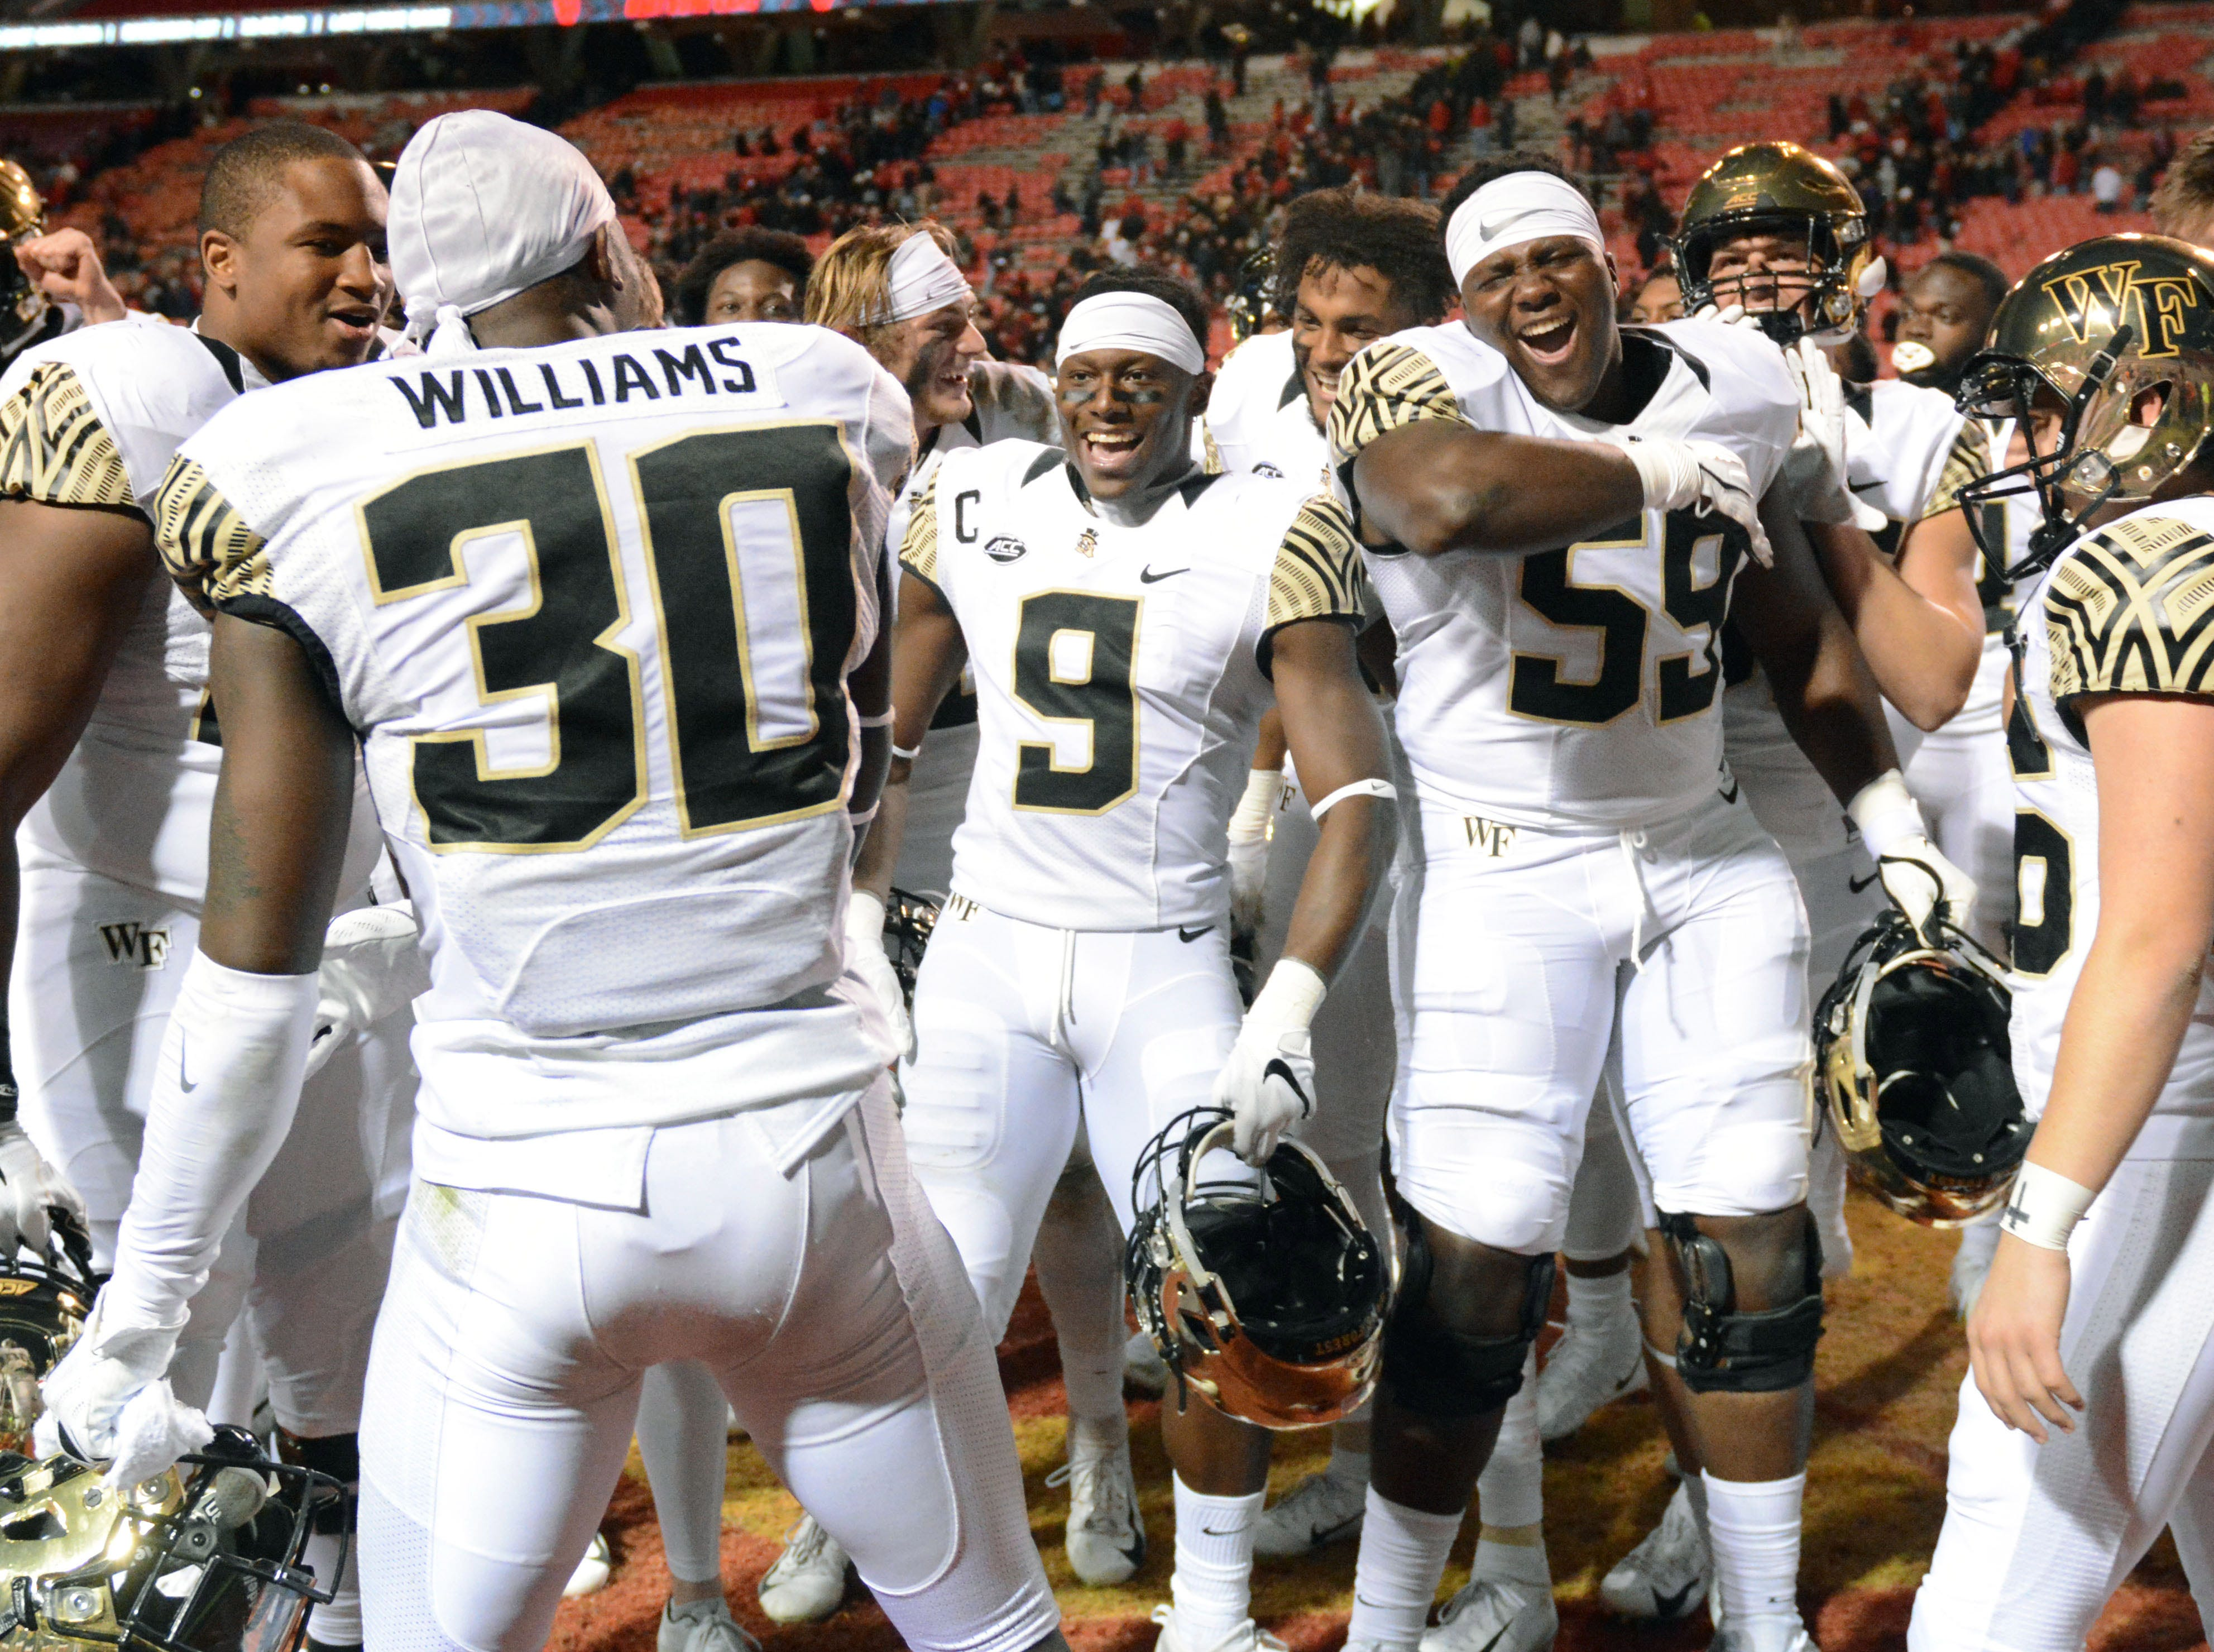 Wake Forest Demon Deacons players celebrate after beating the North Carolina State Wolfpack at Carter-Finley Stadium.